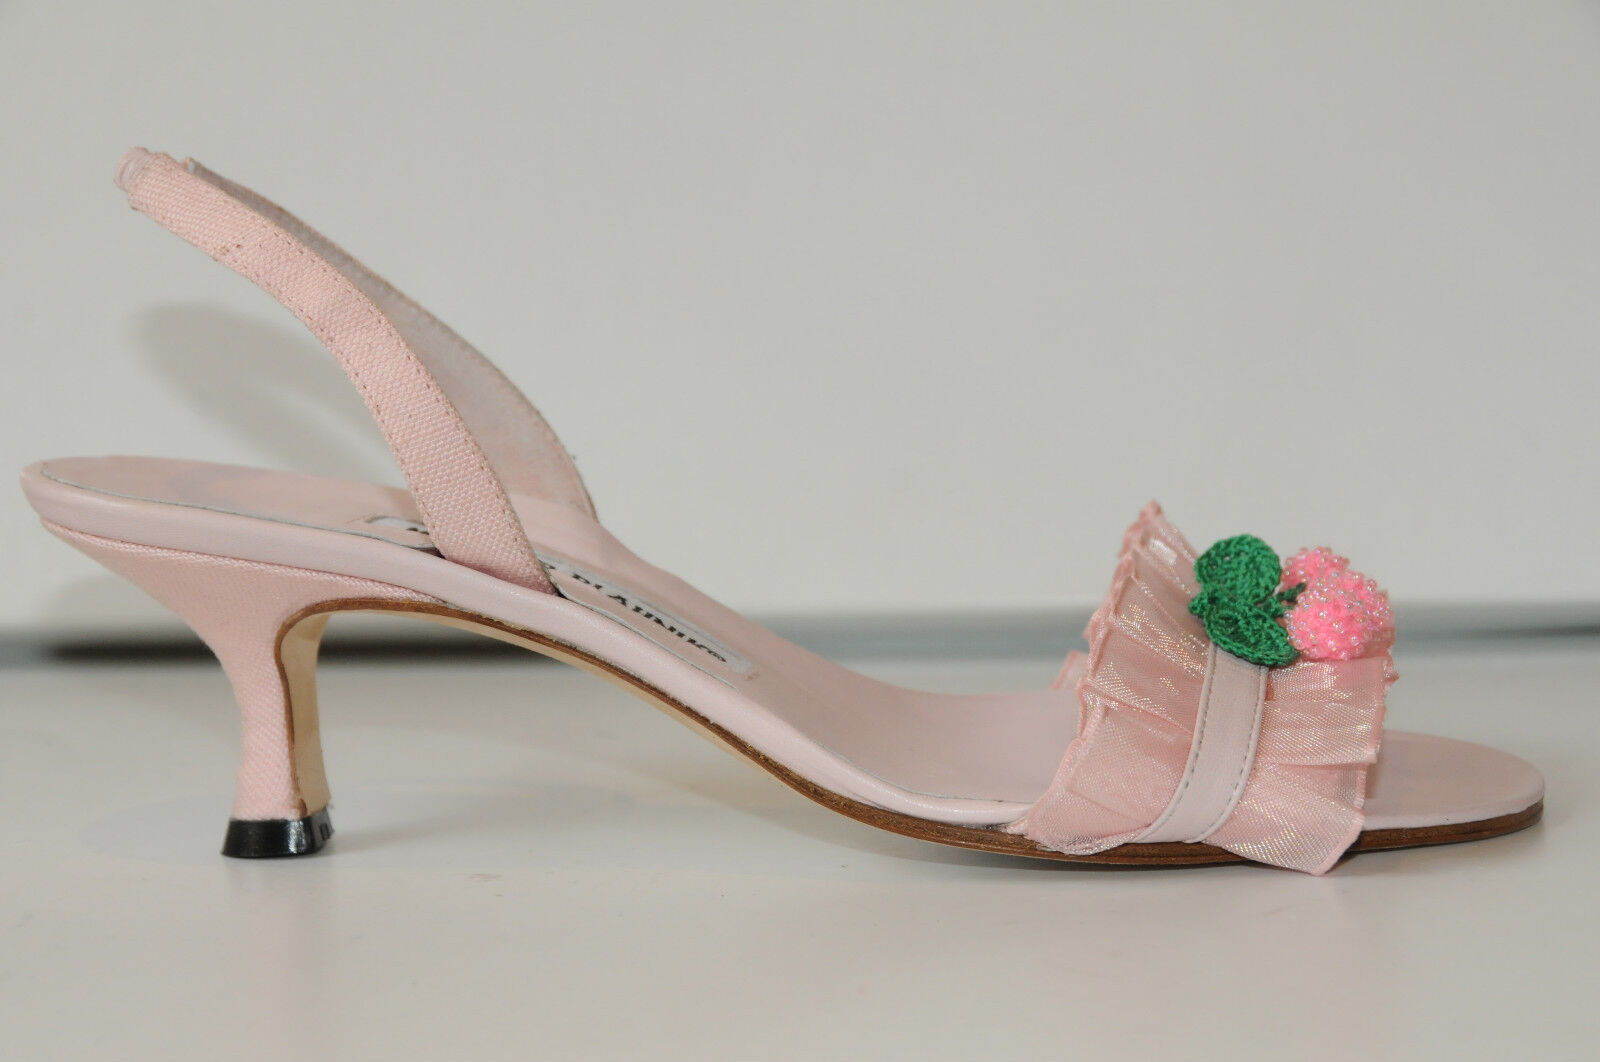 New New New MANOLO BLAHNIK Ribbon Pleated Pale PINK SHOES SANDALS 37 7 6.5 Kitten Heels 45a606